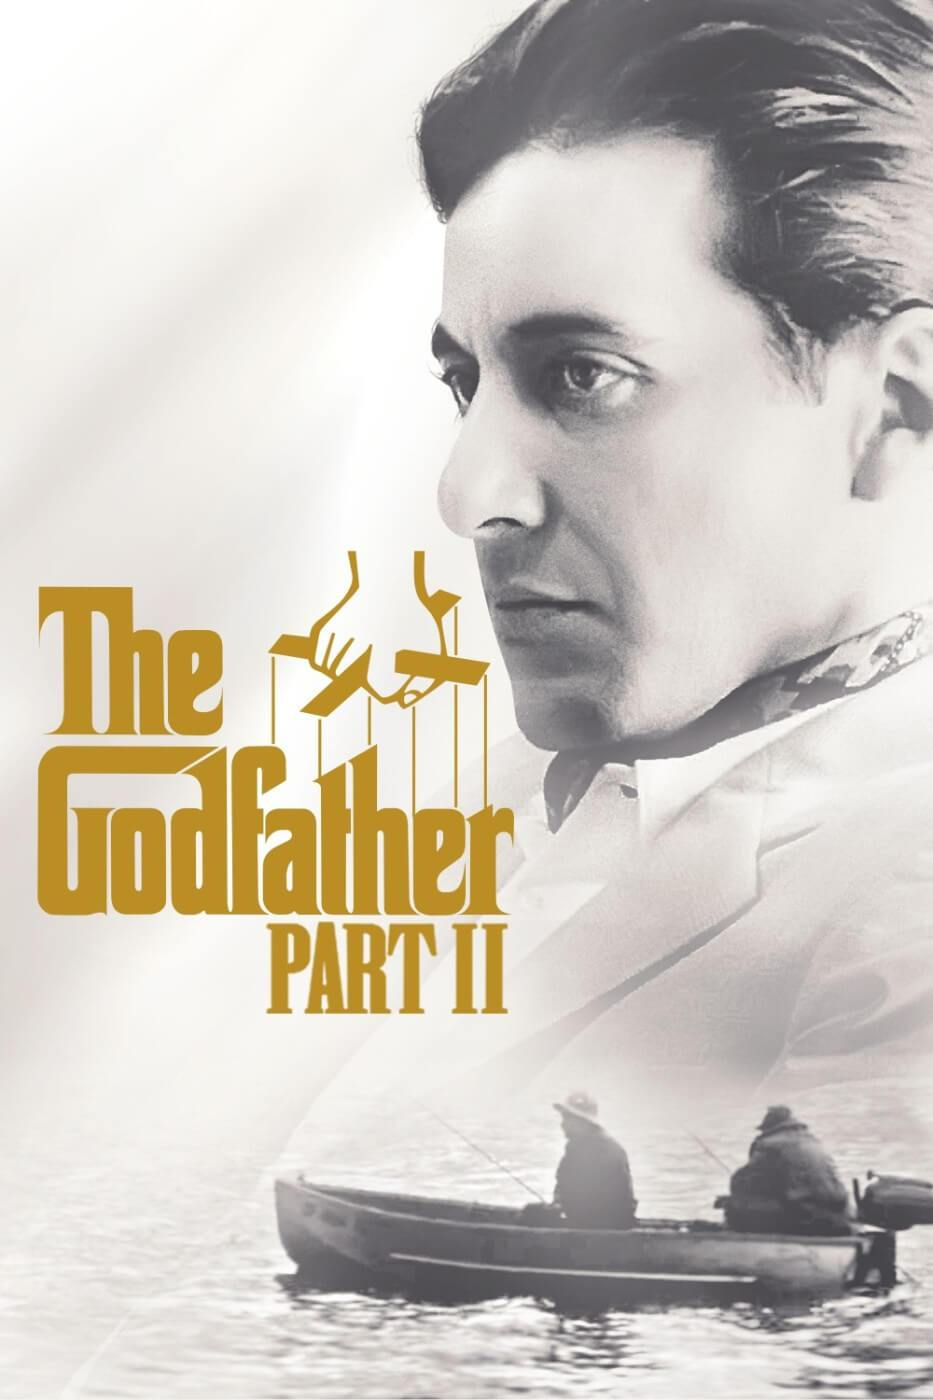 Movie Poster Art - The Godfather II - Tallenge Hollywood Poster ...